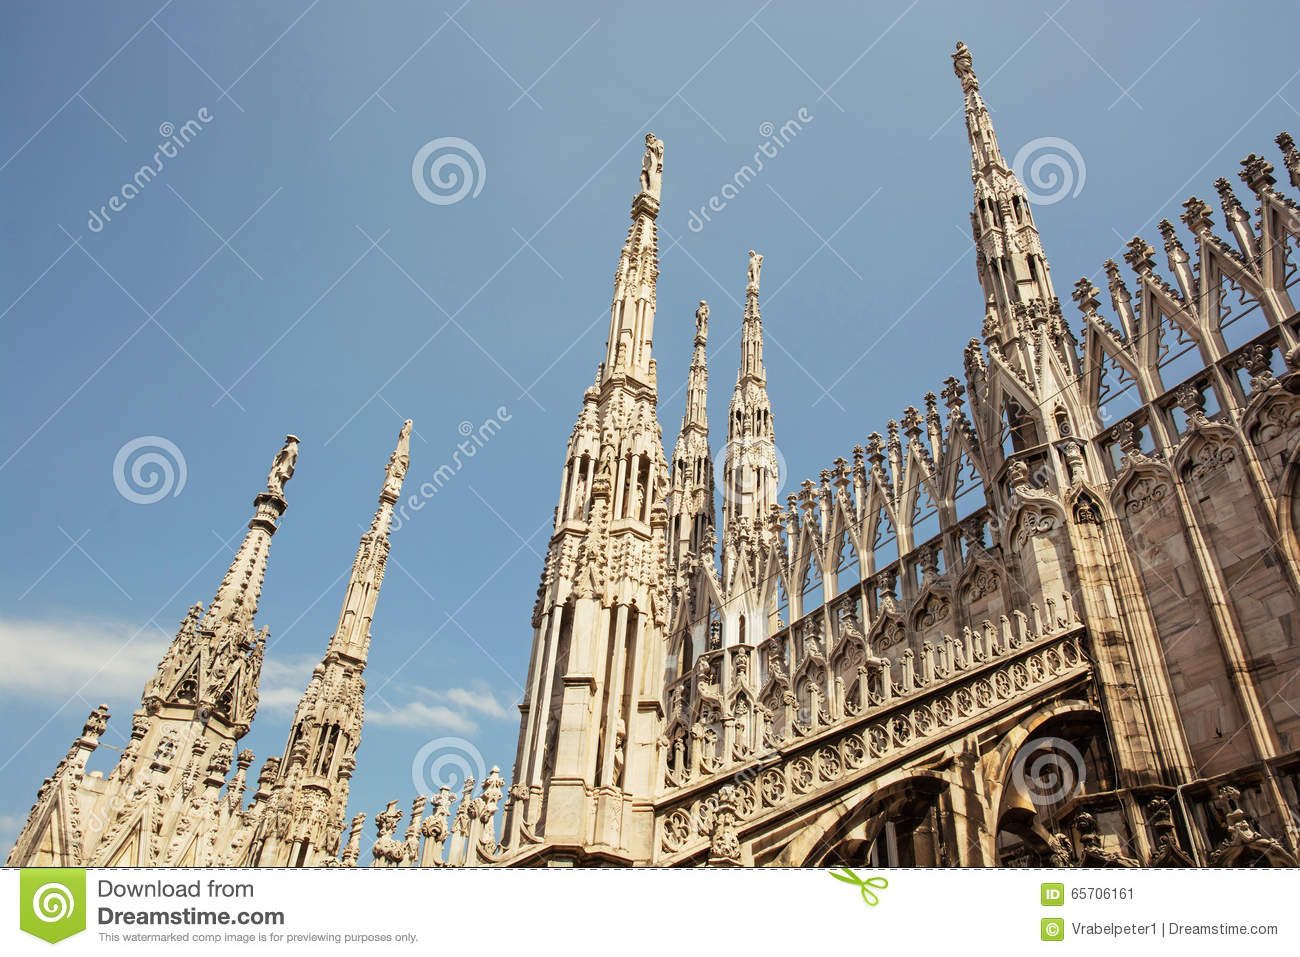 what is the theme of cathedral